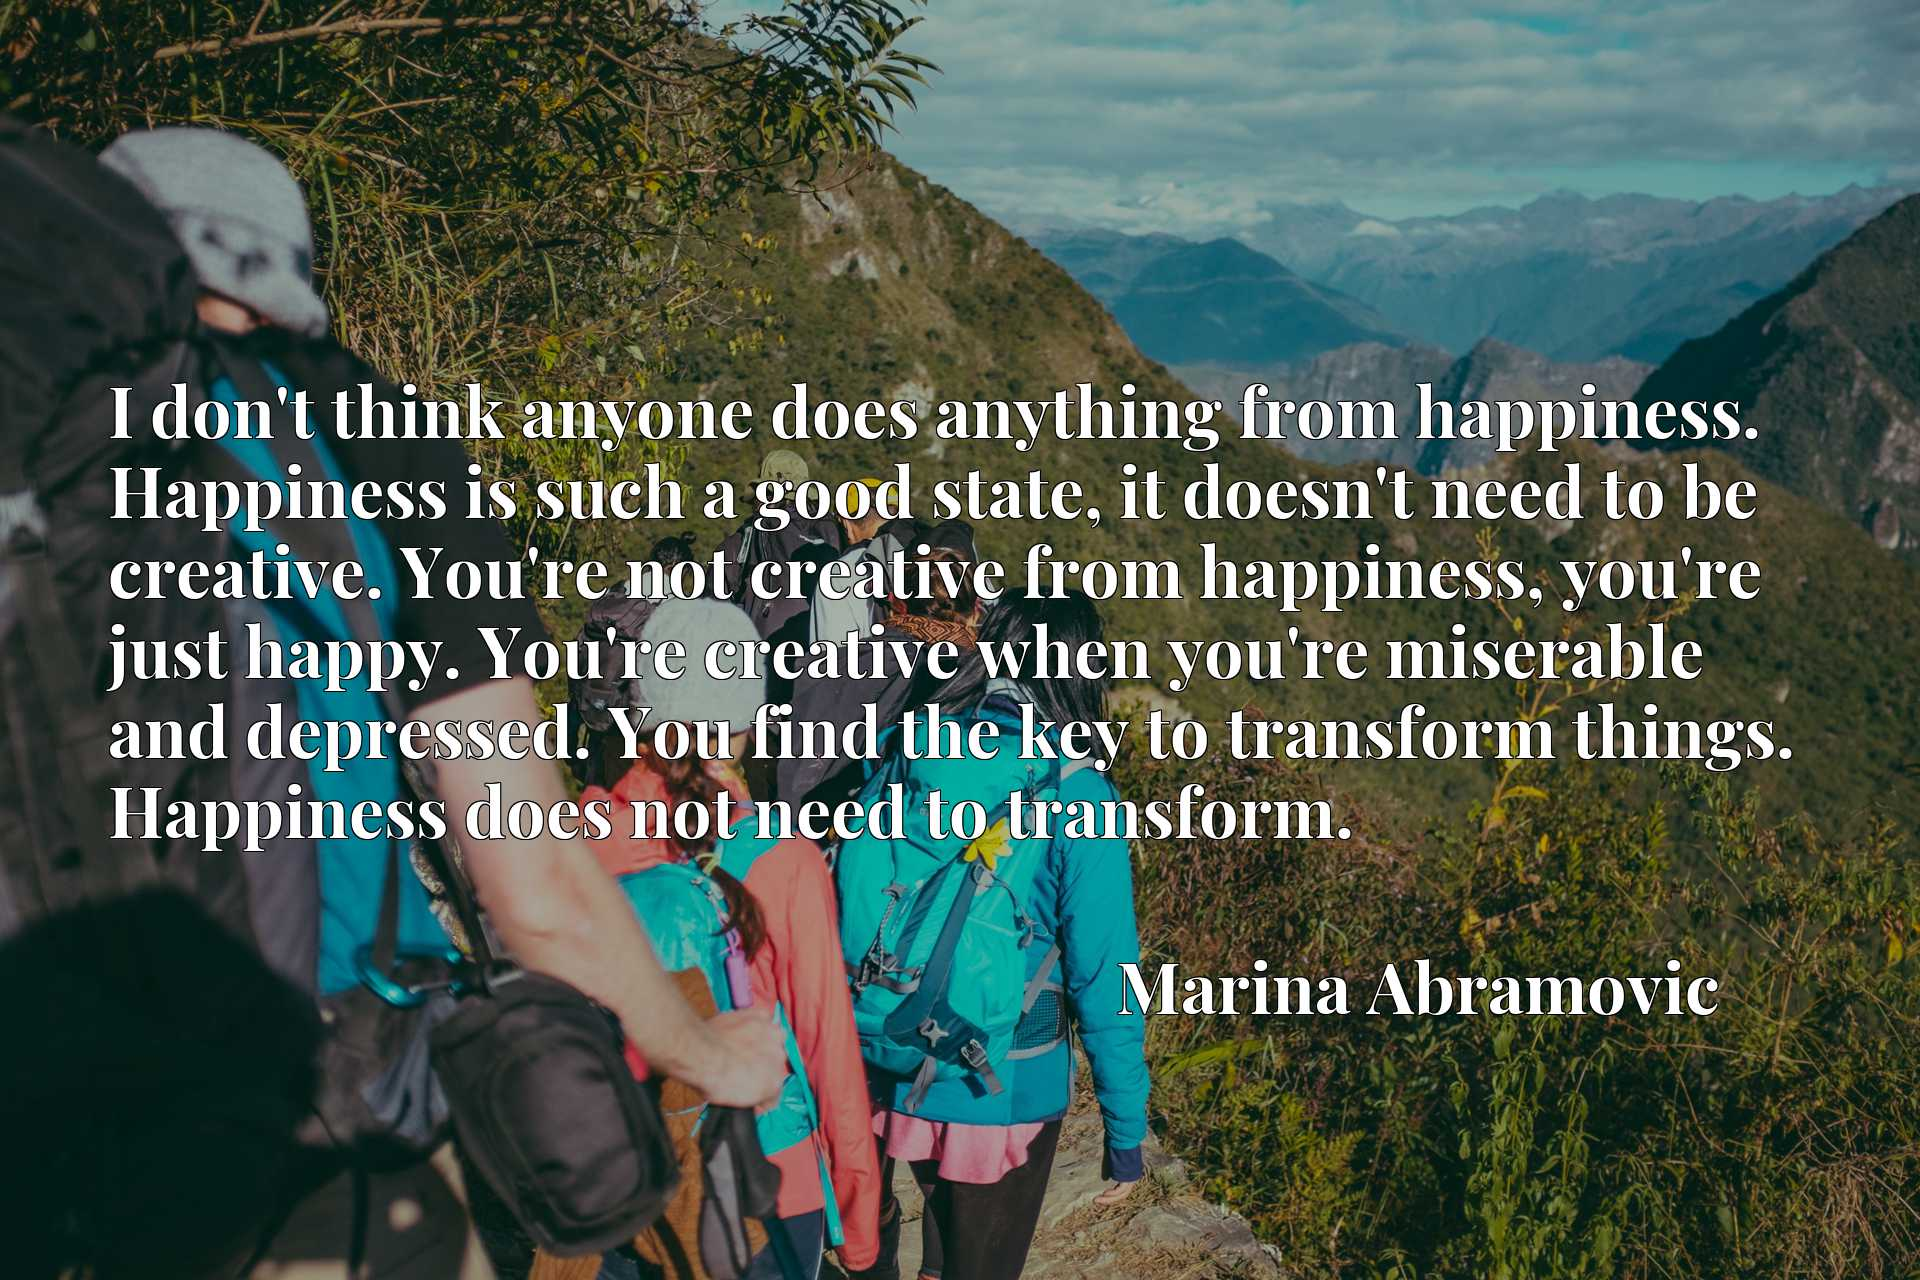 I don't think anyone does anything from happiness. Happiness is such a good state, it doesn't need to be creative. You're not creative from happiness, you're just happy. You're creative when you're miserable and depressed. You find the key to transform things. Happiness does not need to transform.